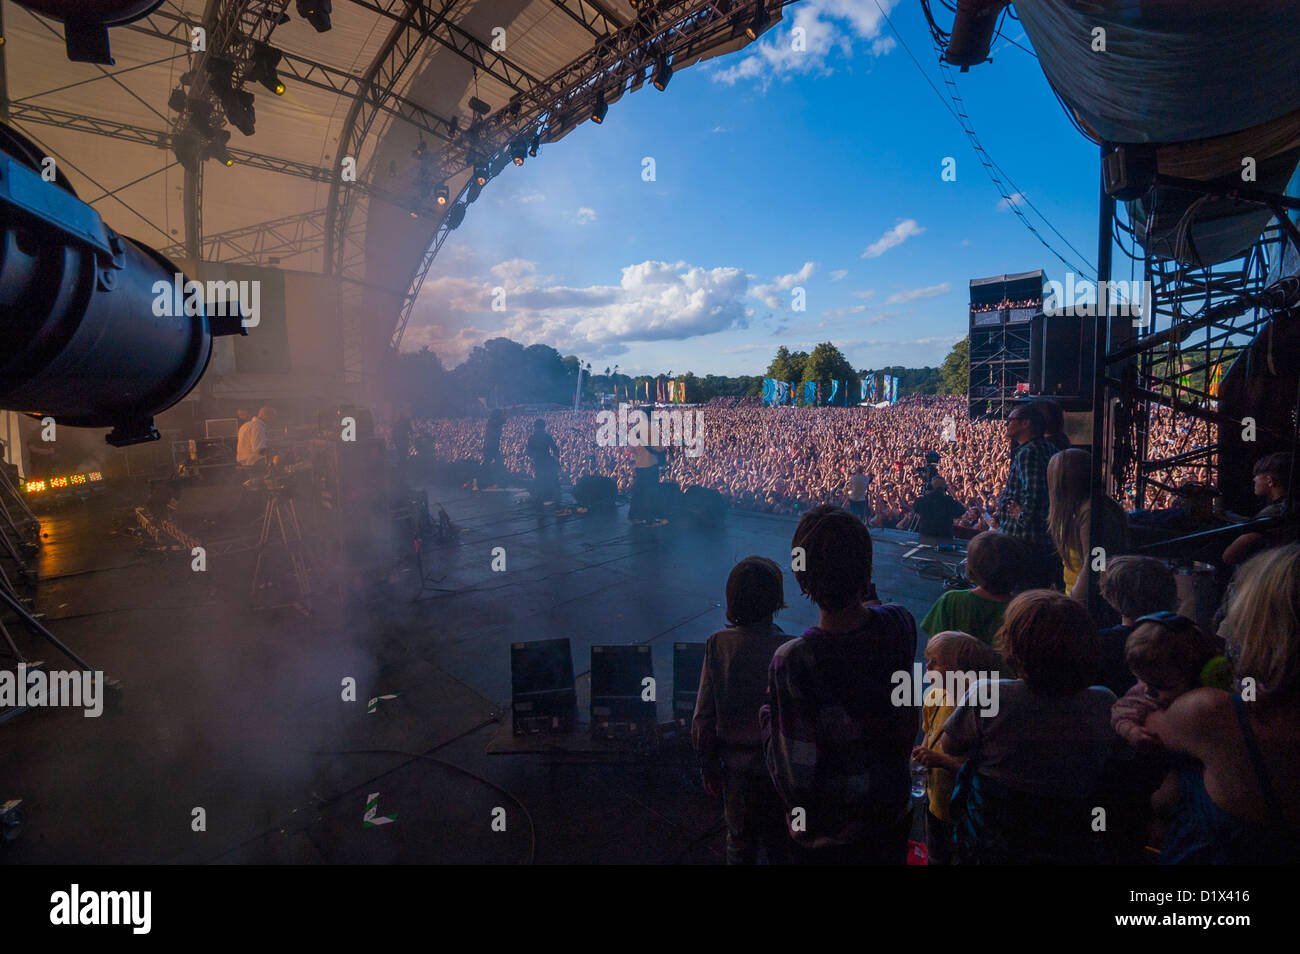 Backstage at UK Music Festival - Stock Image